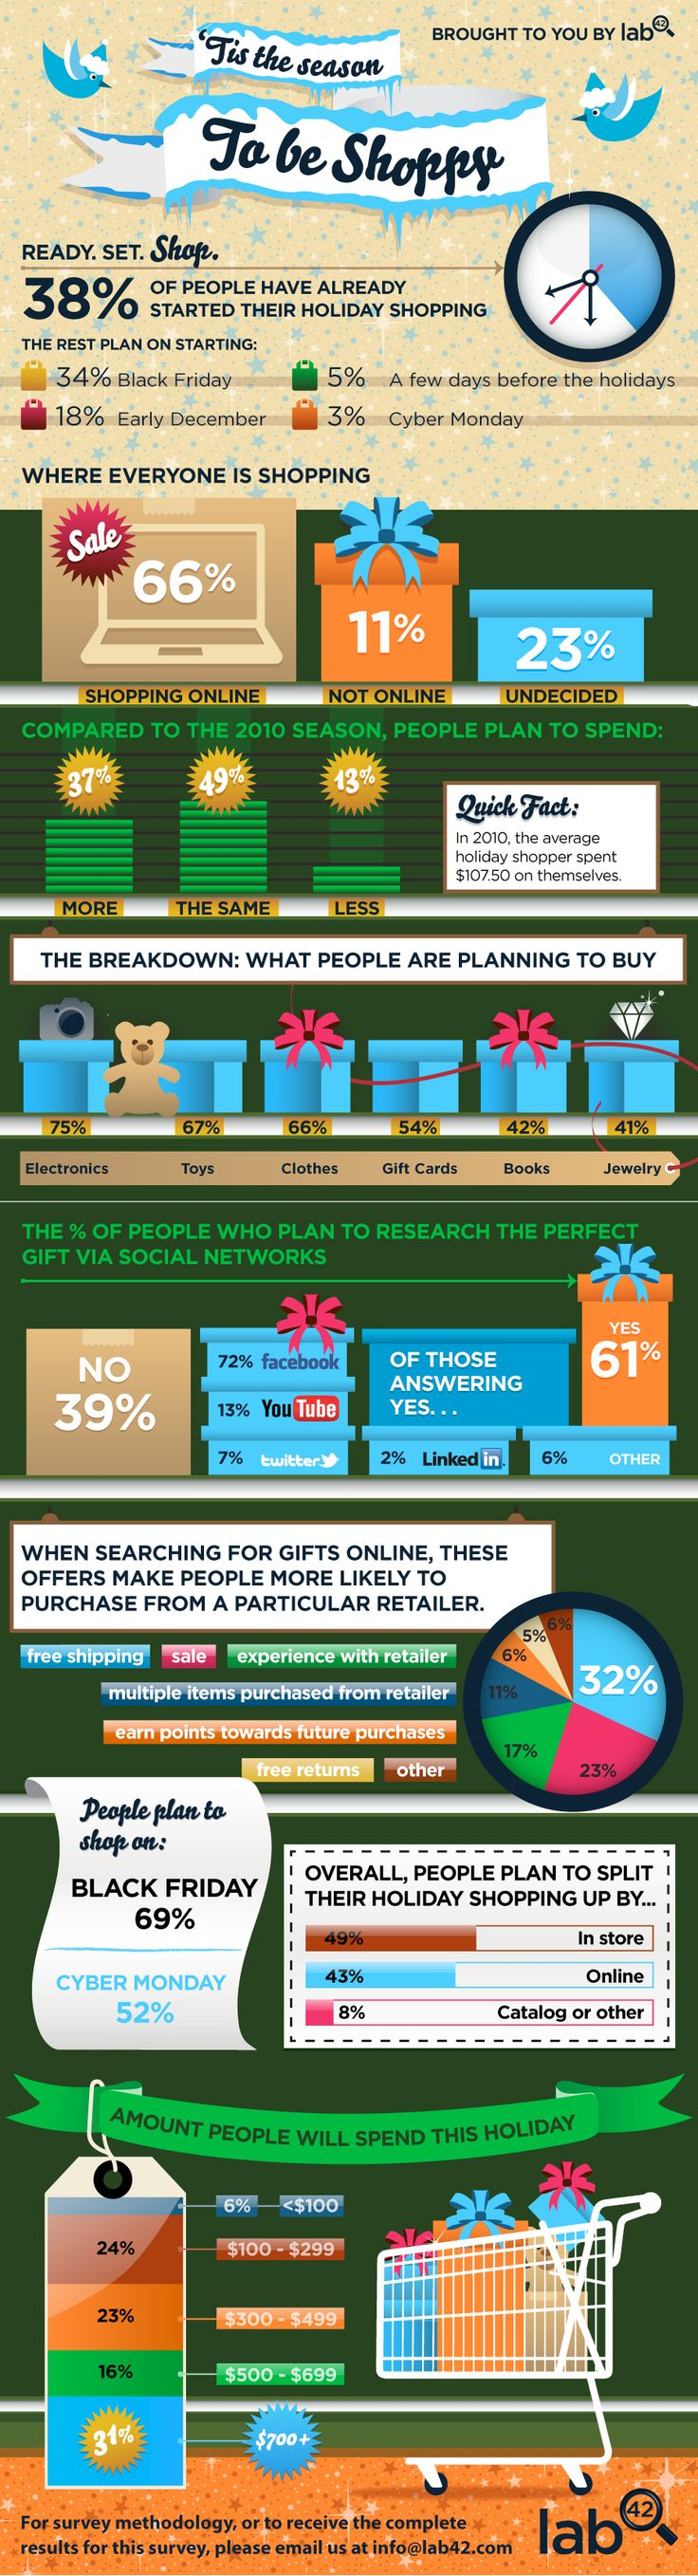 We all know consumers spend more during the holiday season than any other time during the year. But did you know 38% of people have already began their yearly shopping extravaganzas?: Christmas Shops, Consumer Spend, Website, Social Media, Holidays Gifts, Internet Site, Online Shops, Holidays Shops, Holidays Seasons